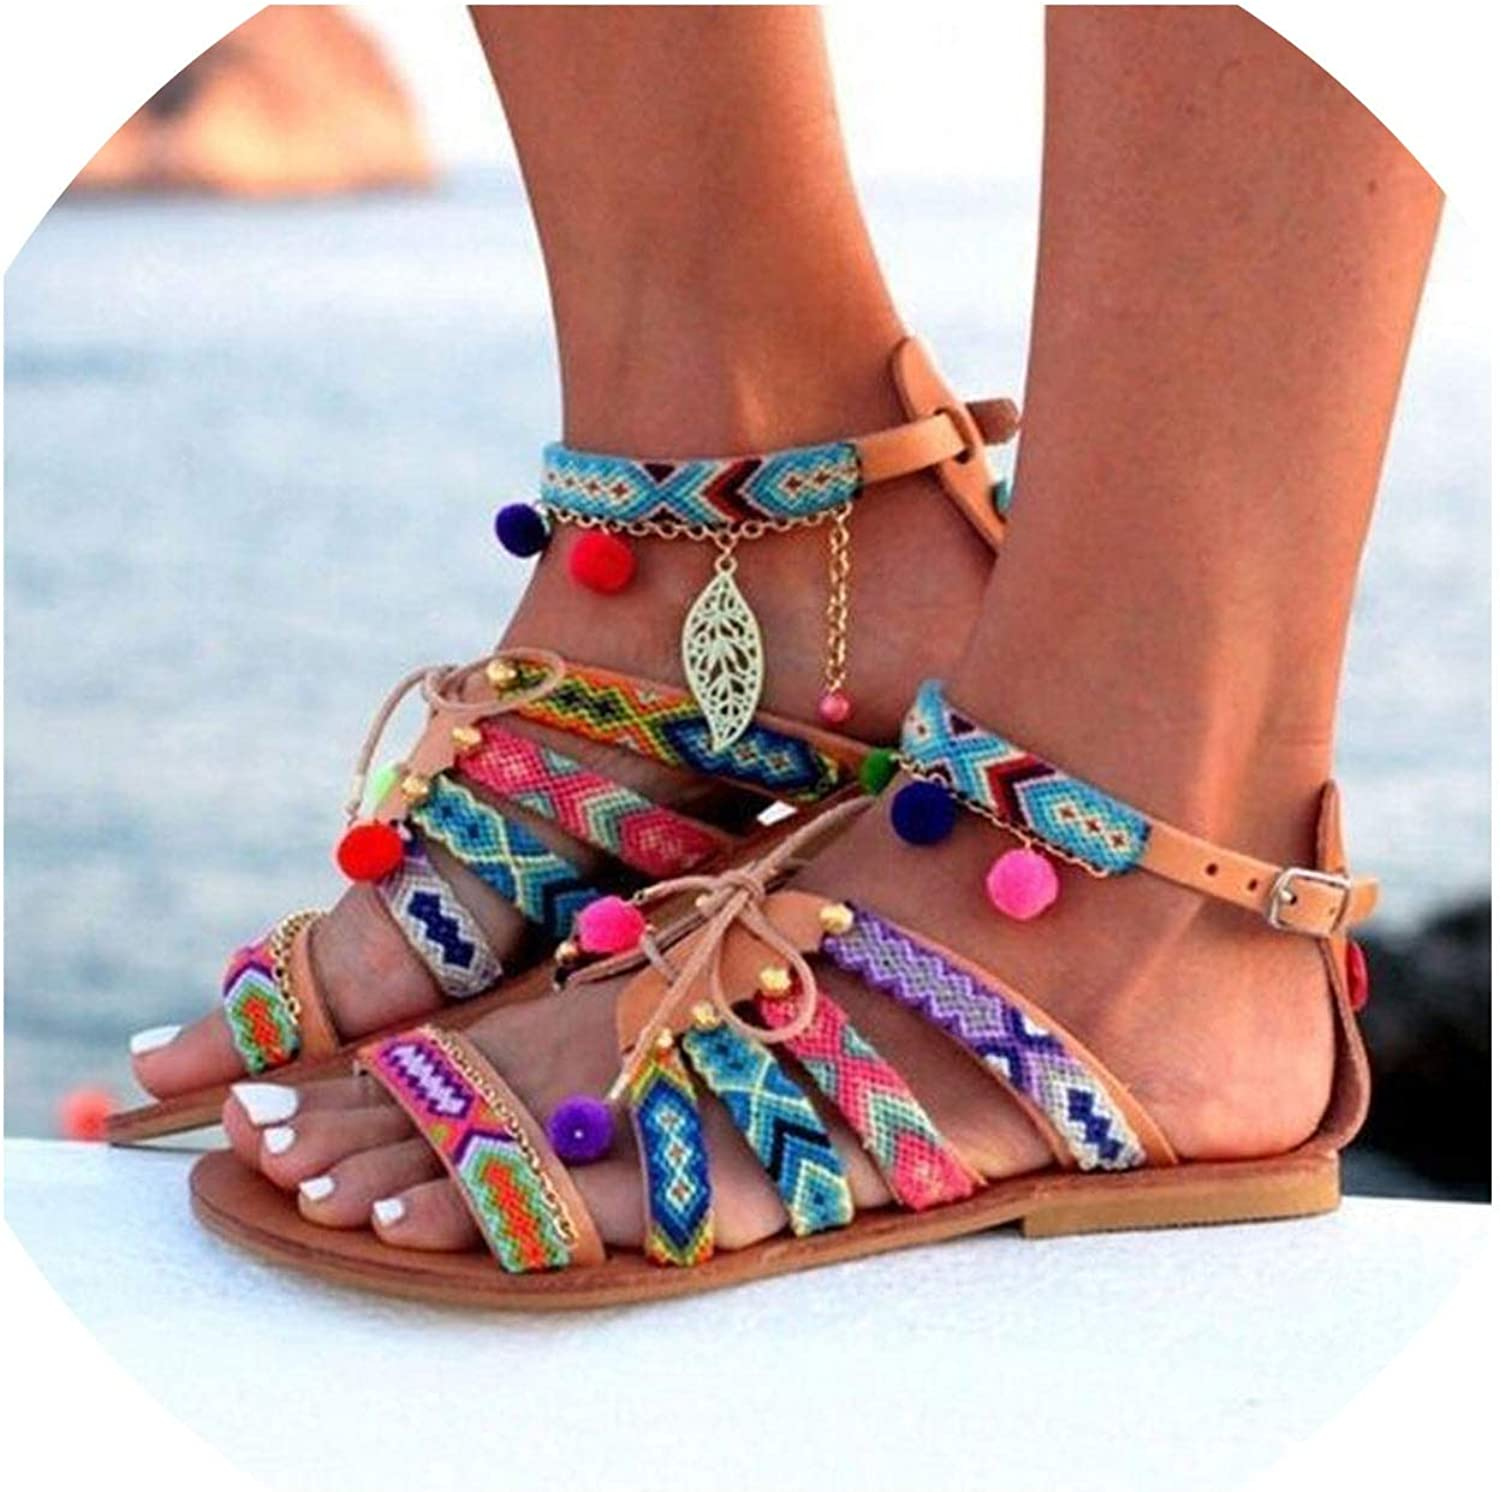 Summer Sandals for Beach Women Bohemia Sandals Gladiator Leather Sandals Flats shoes